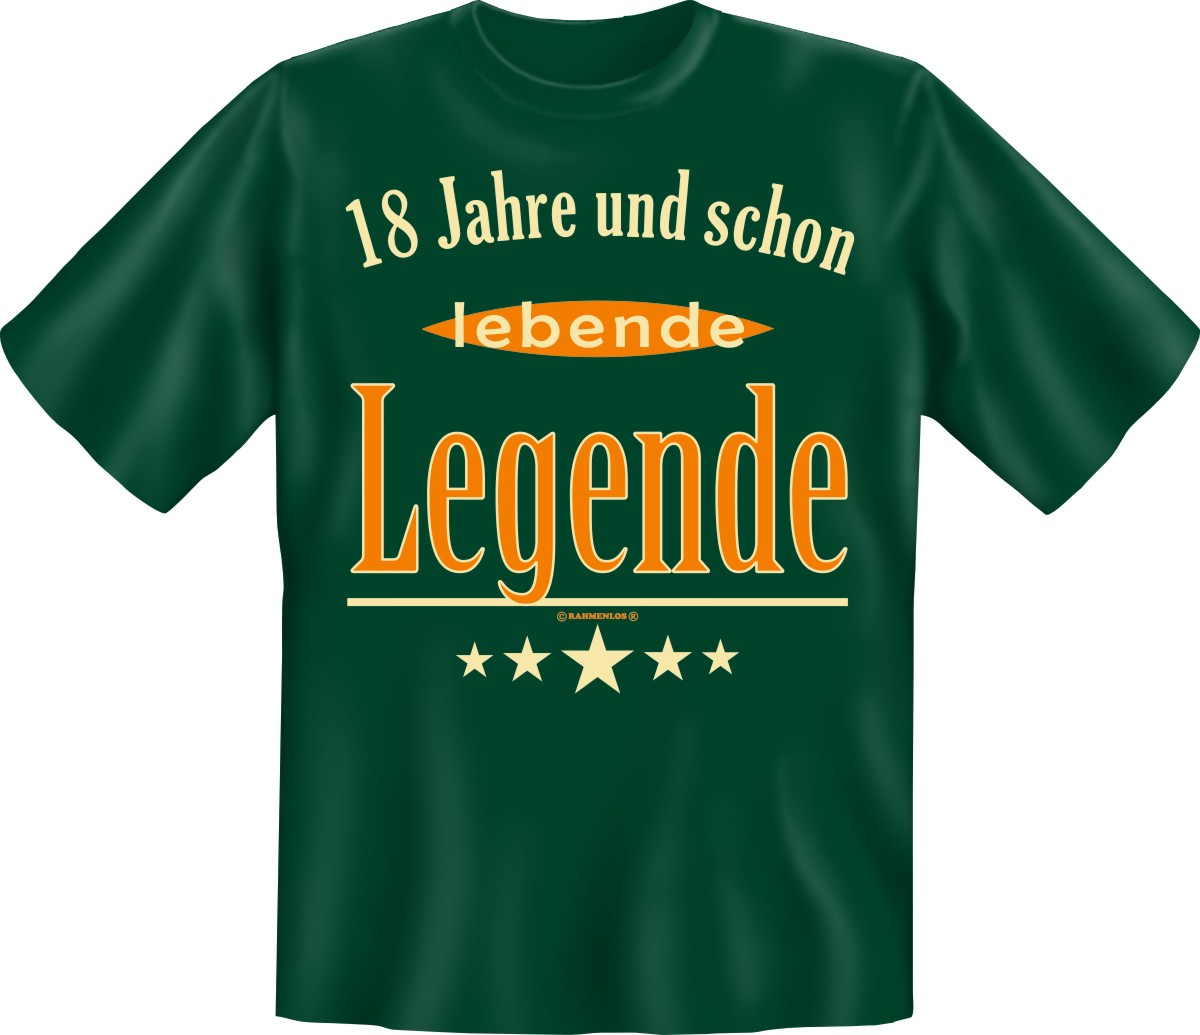 lustiges t shirt zum 18 geburtstag 18ten geburtstagsgeschenke coole spass shirt ebay. Black Bedroom Furniture Sets. Home Design Ideas